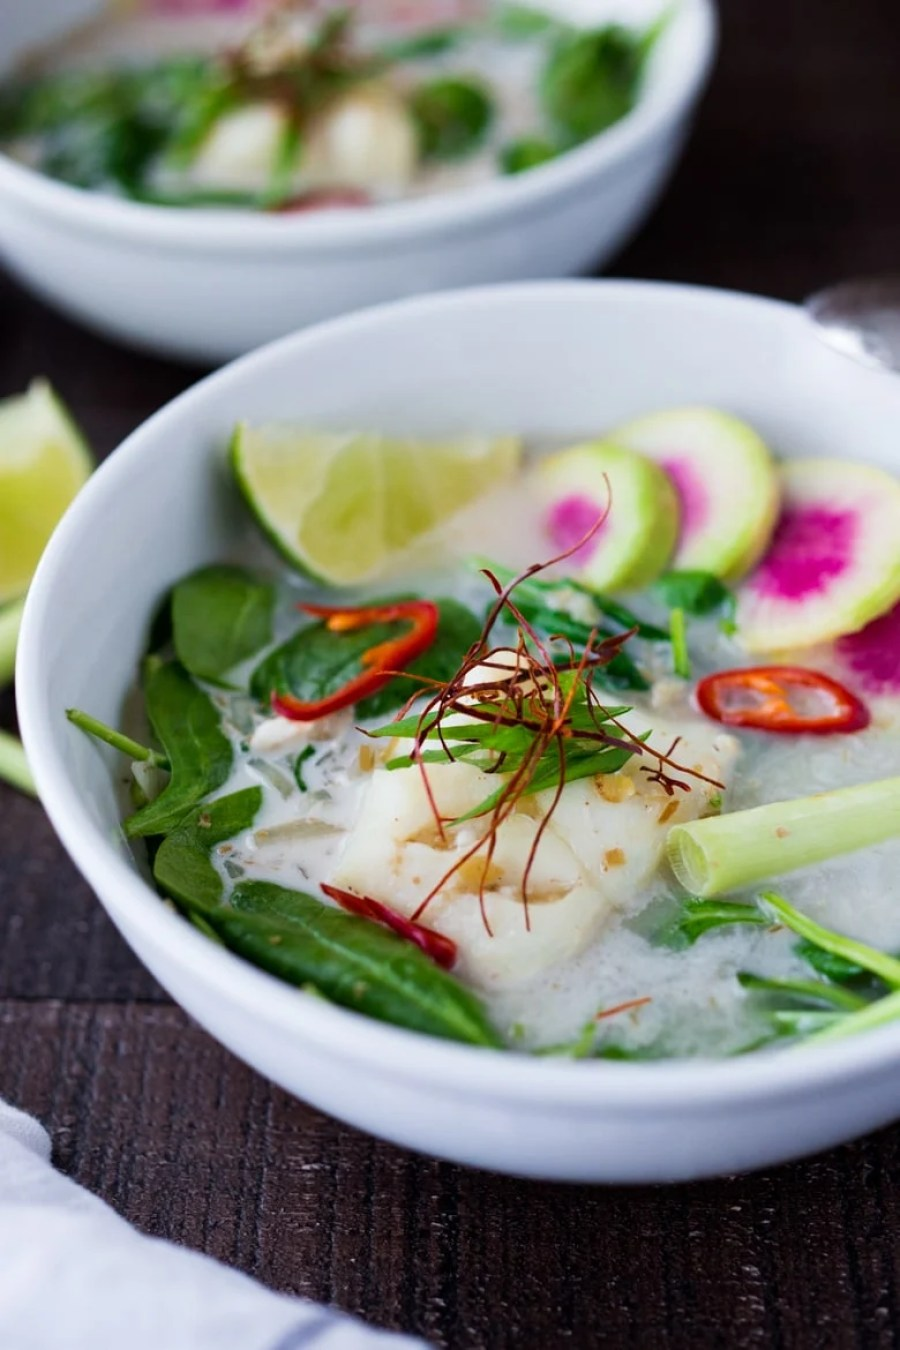 10 FEEL BETTER Brothy Soups to heal, comfort and help build immunity. Lemongrass Coconut Broth with Cod and Spinach | www.feastingathome.com